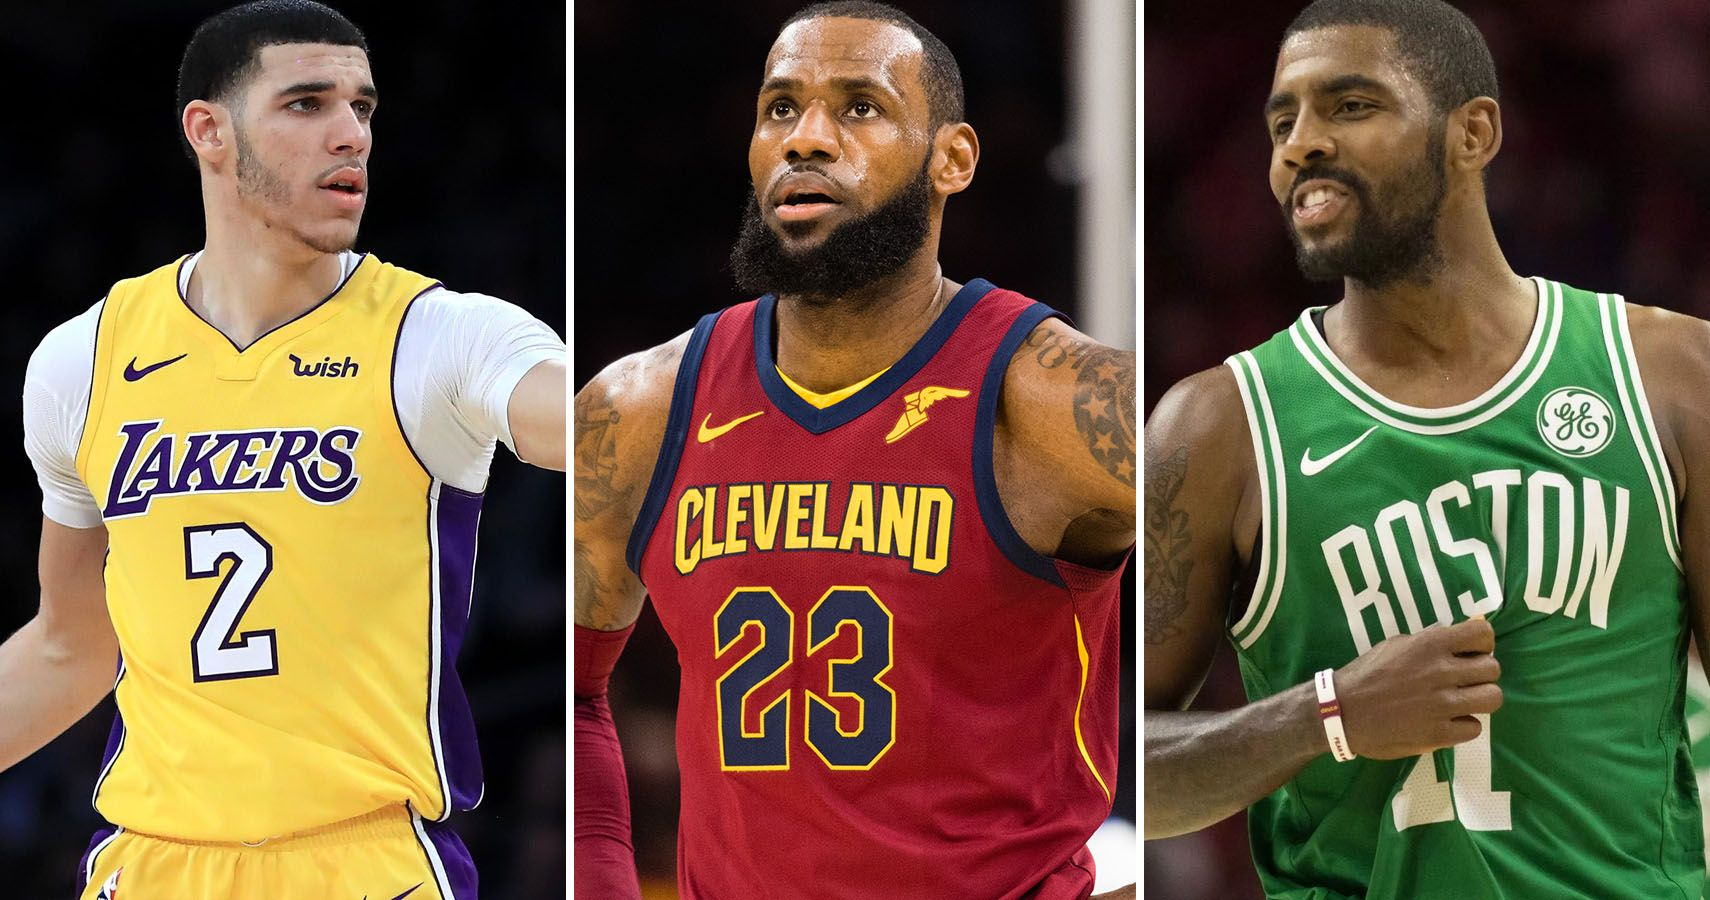 348a0b2bcb5 8 NBA Teams That Would Become Contenders With LeBron James (And 8 Who  Wouldn t)